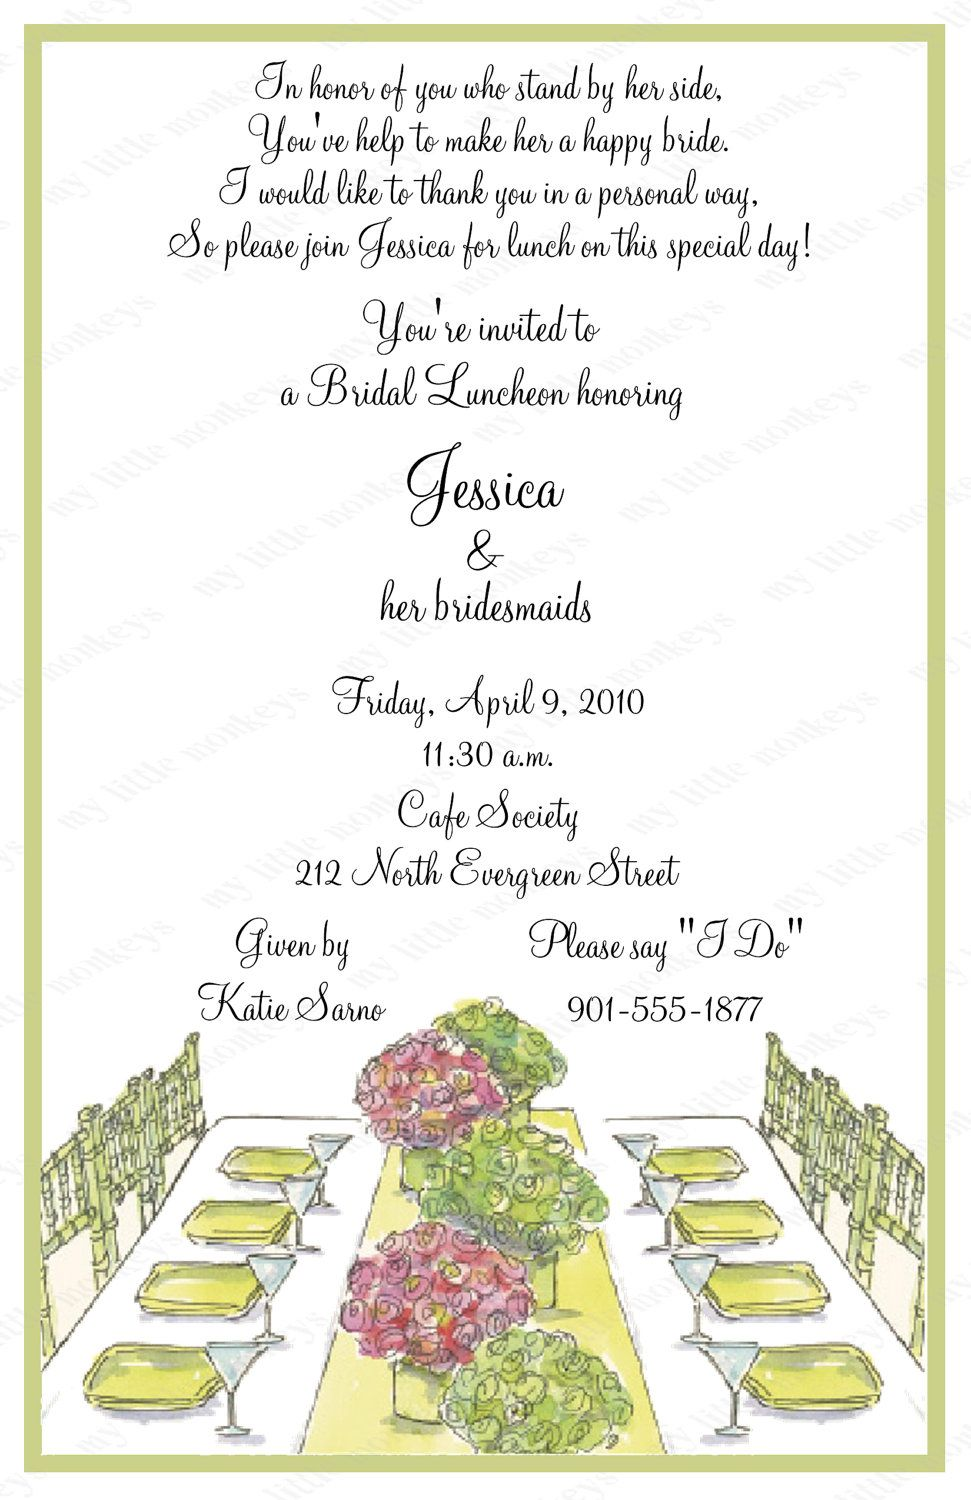 10 Bridal Luncheon Invitations With Envelopes Free Return Address